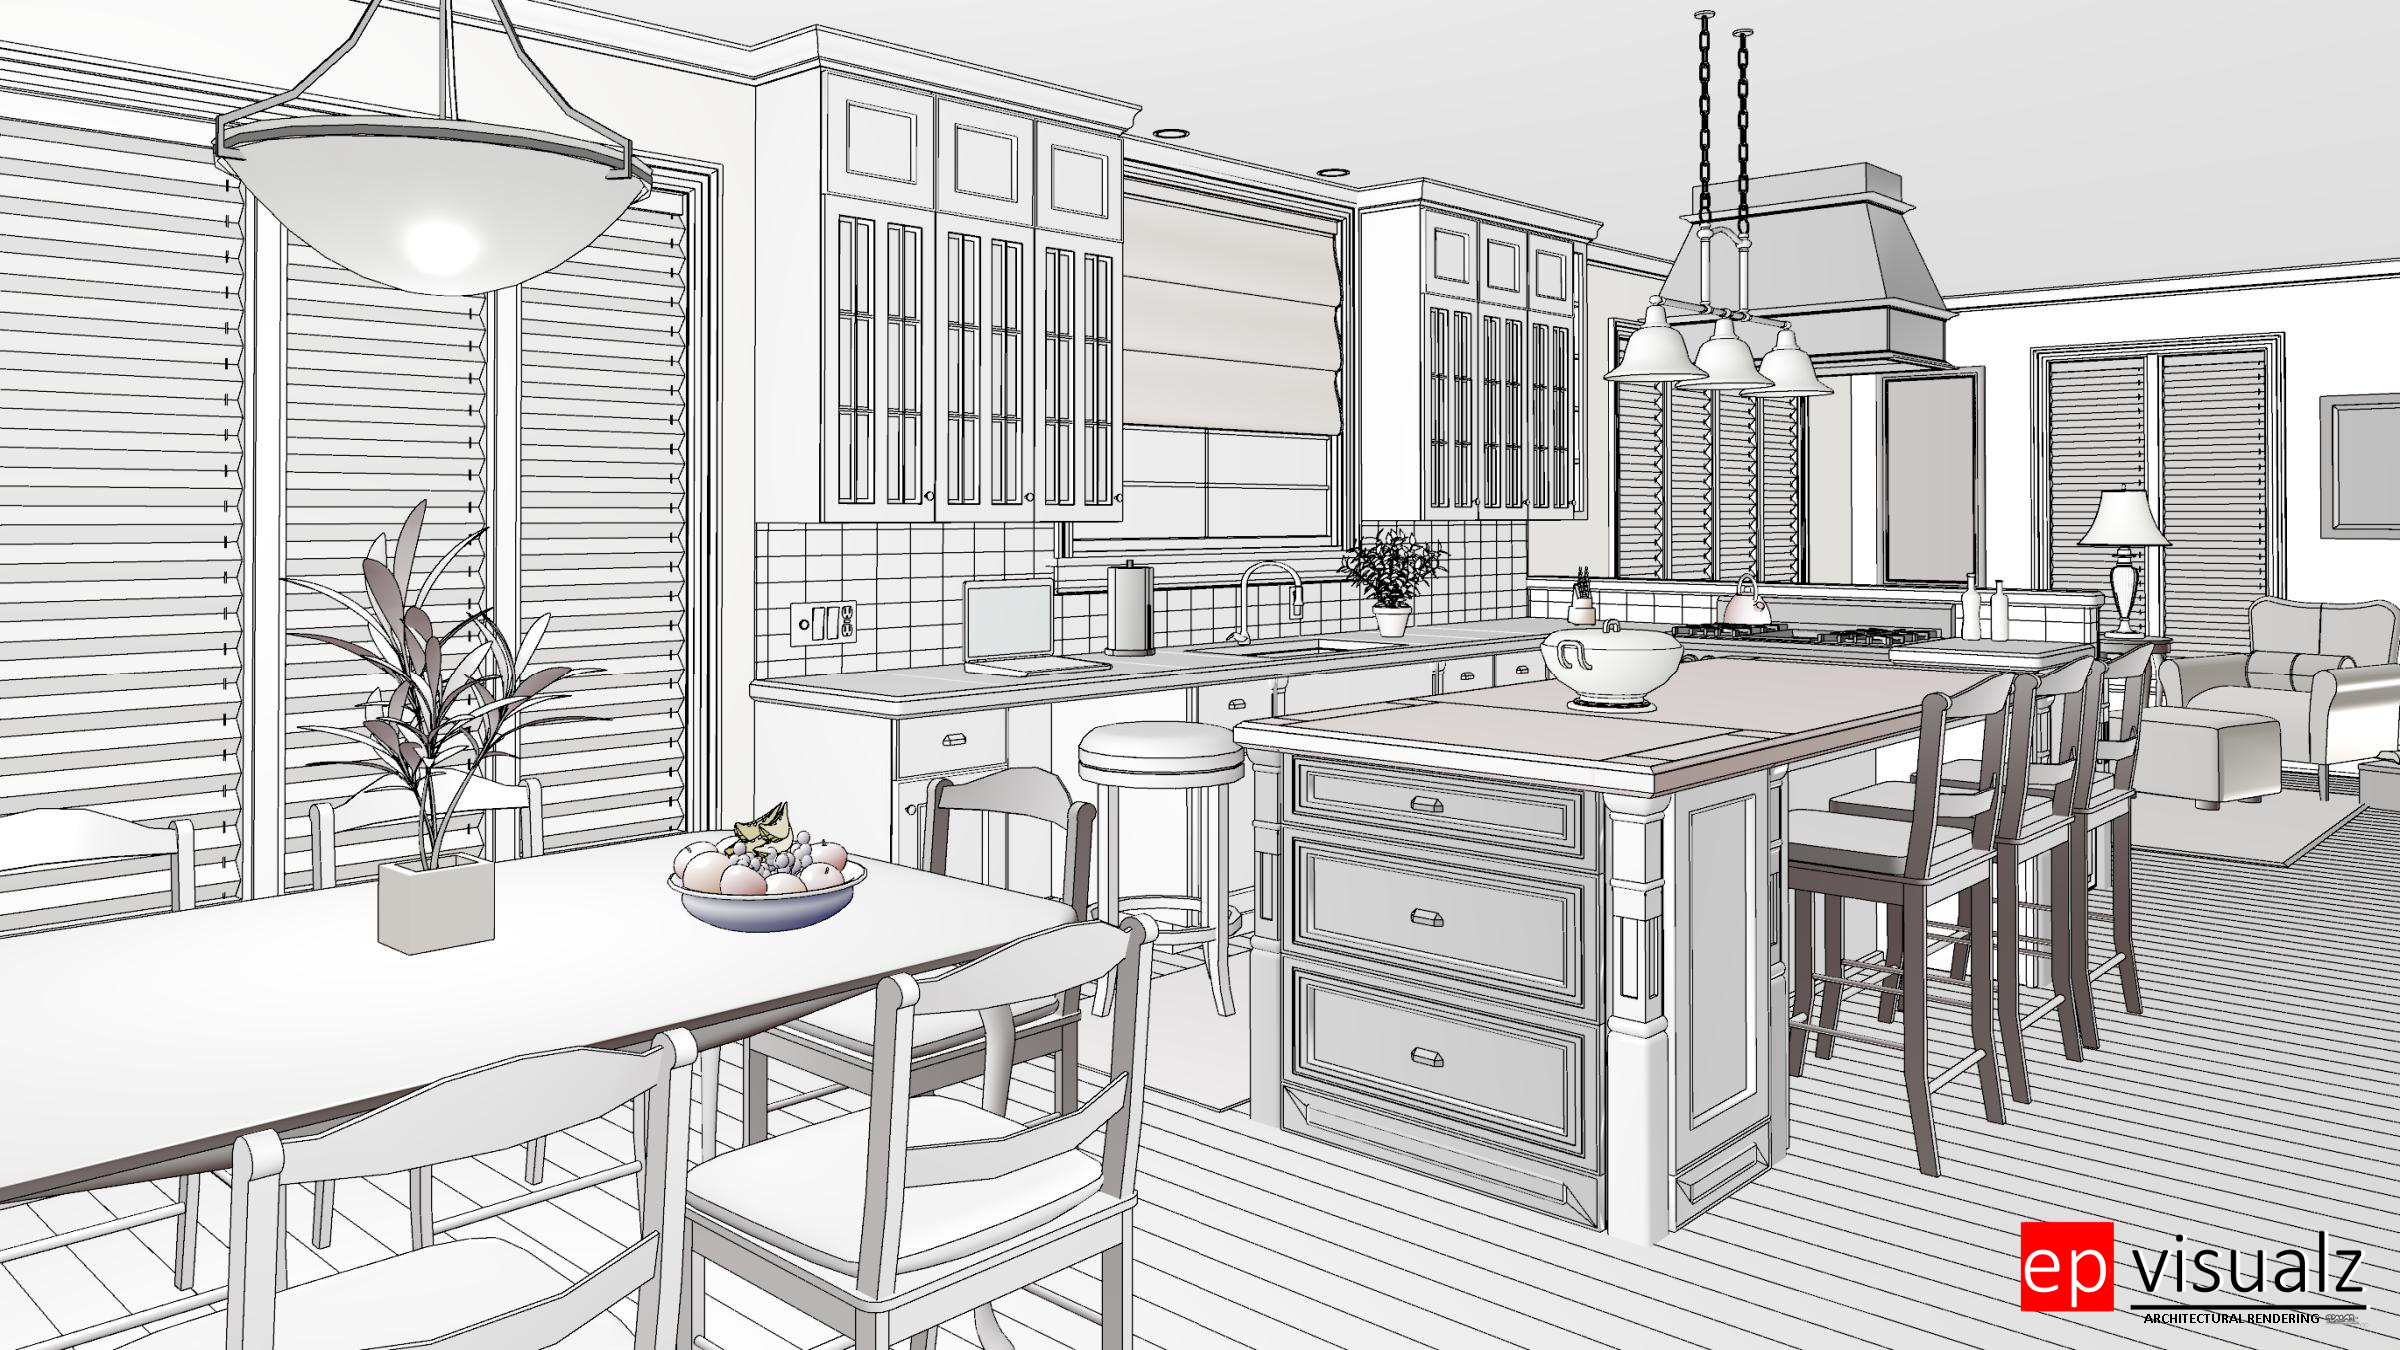 Duotone Rendering, Glass House Rendering, Line Rendering,Photorealistic Ray-Trace Rendering, Standard Rendering, Technical Rendering, Vector Rendering, Watercolor Rendering, Watercolor-Line Rendering